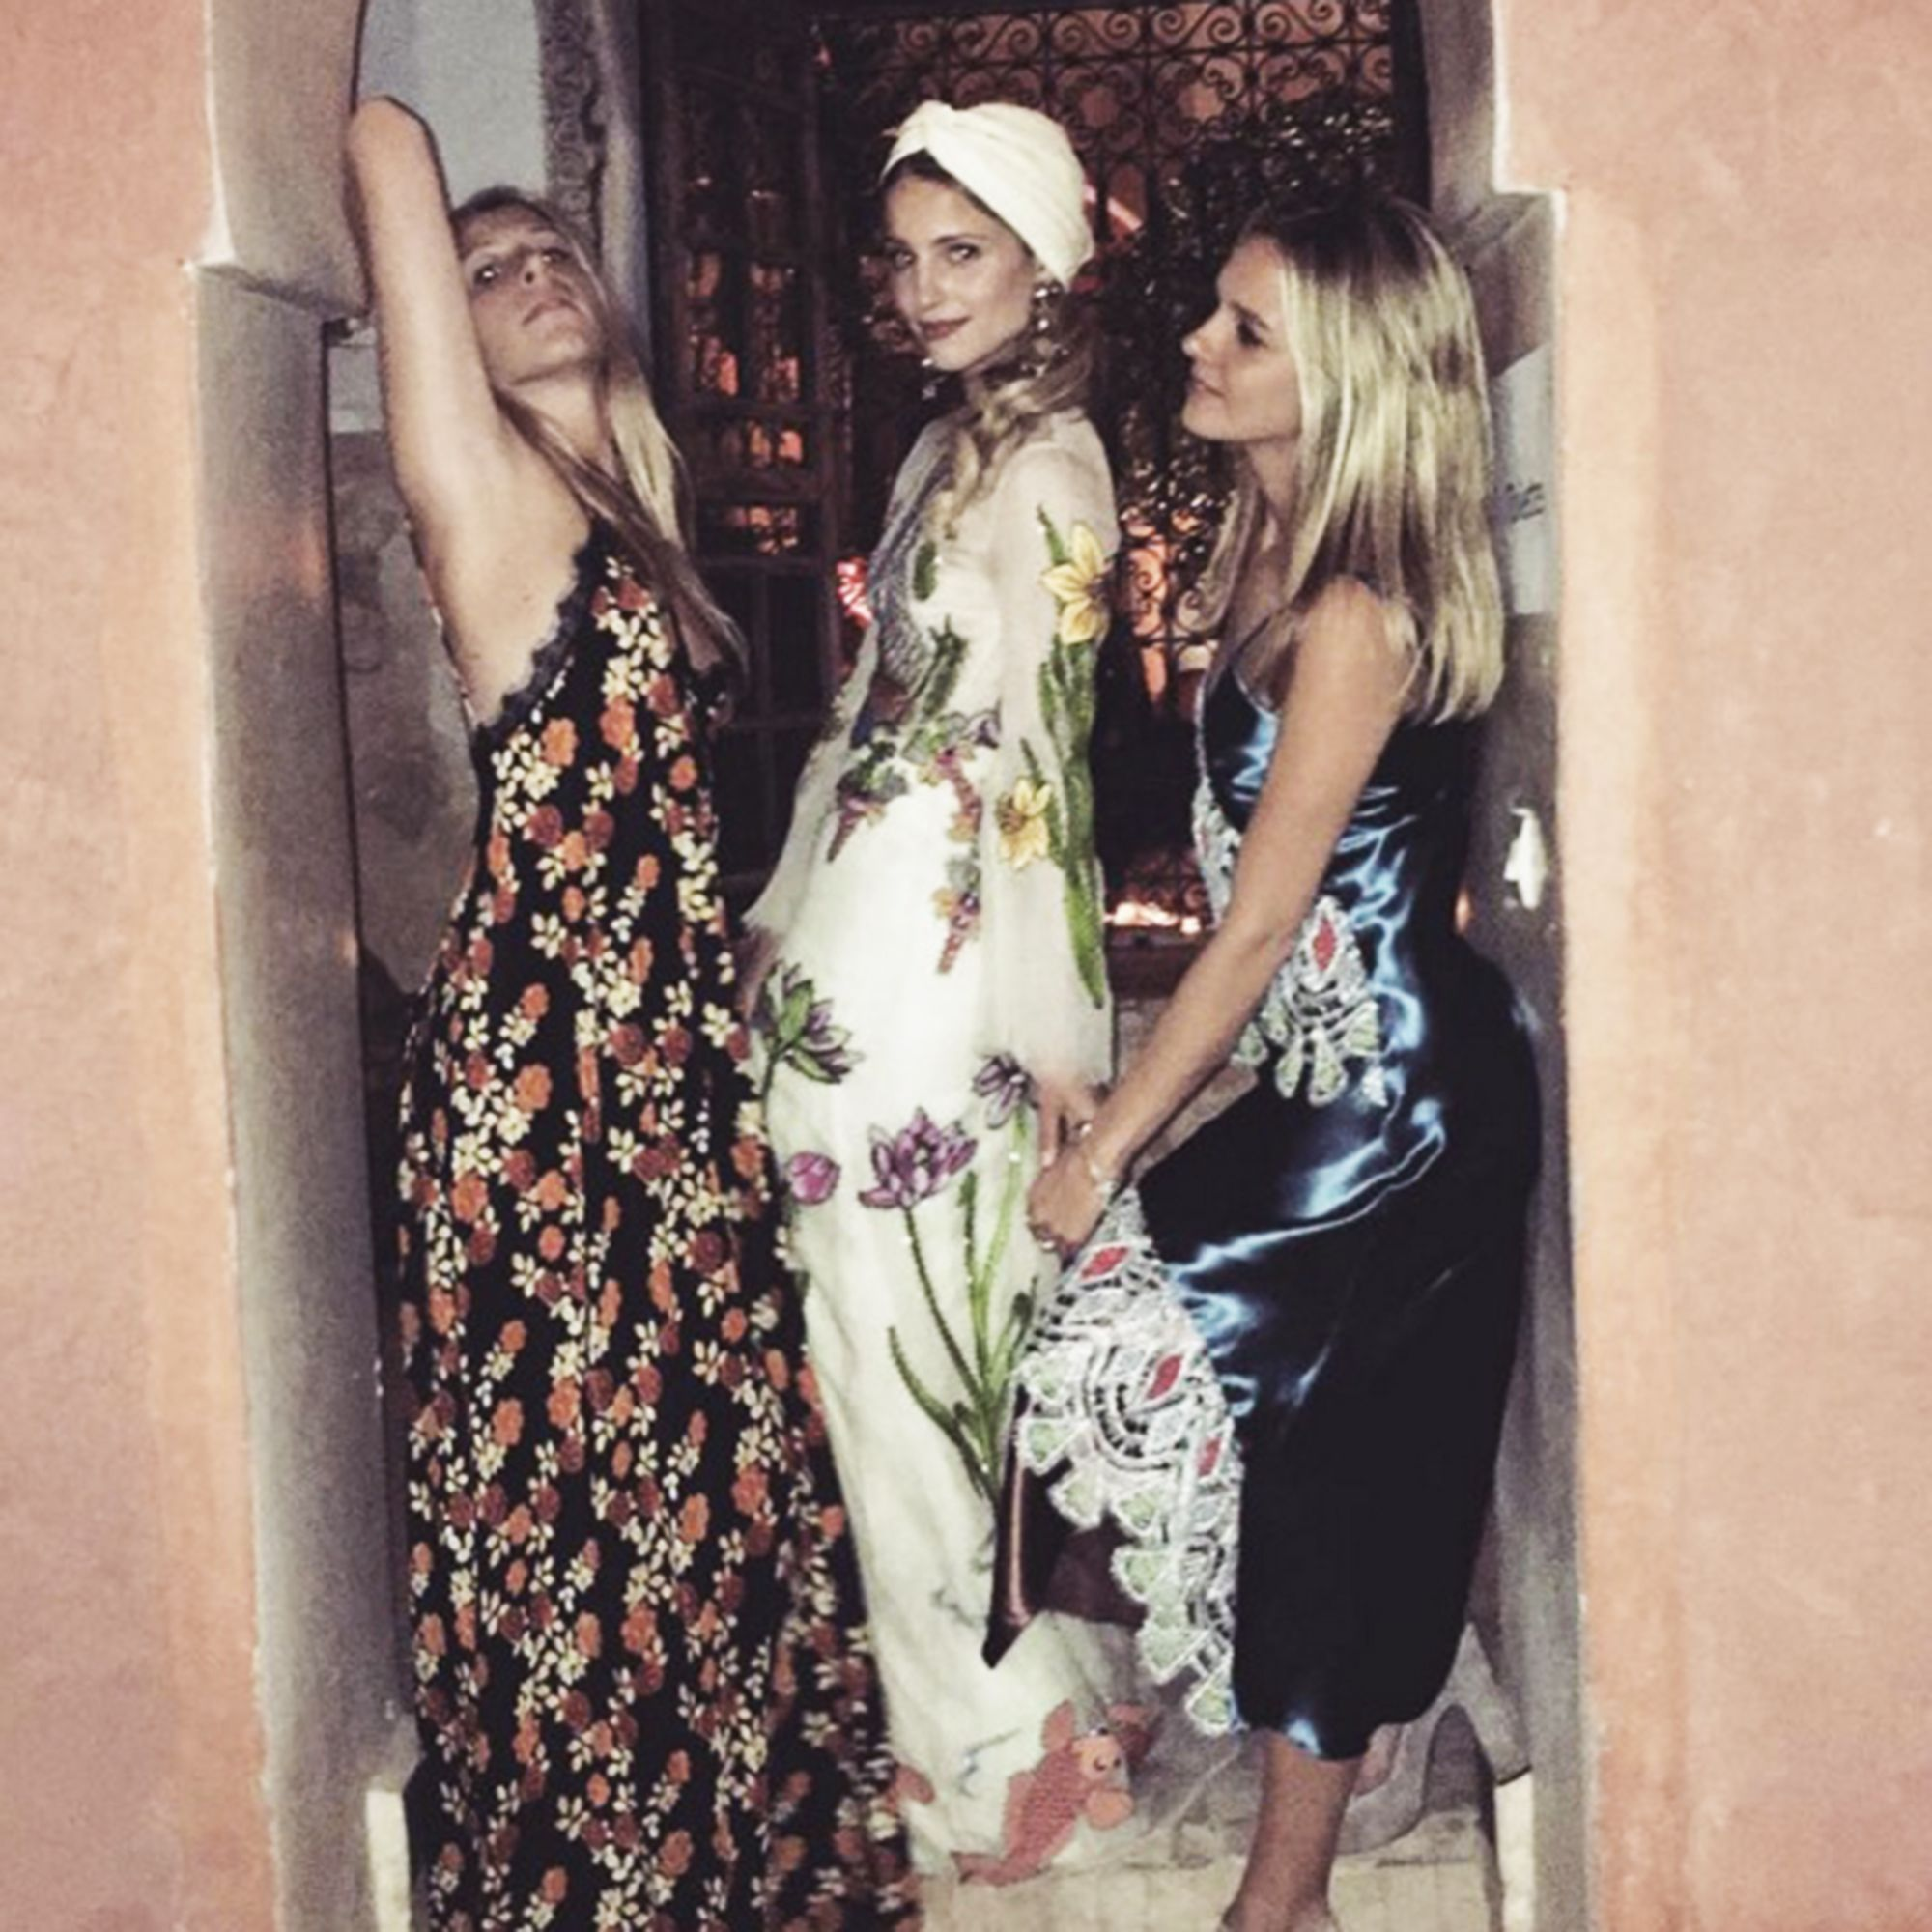 Dianna Agron Gucci and Valentino wedding dresses | ELLE UK